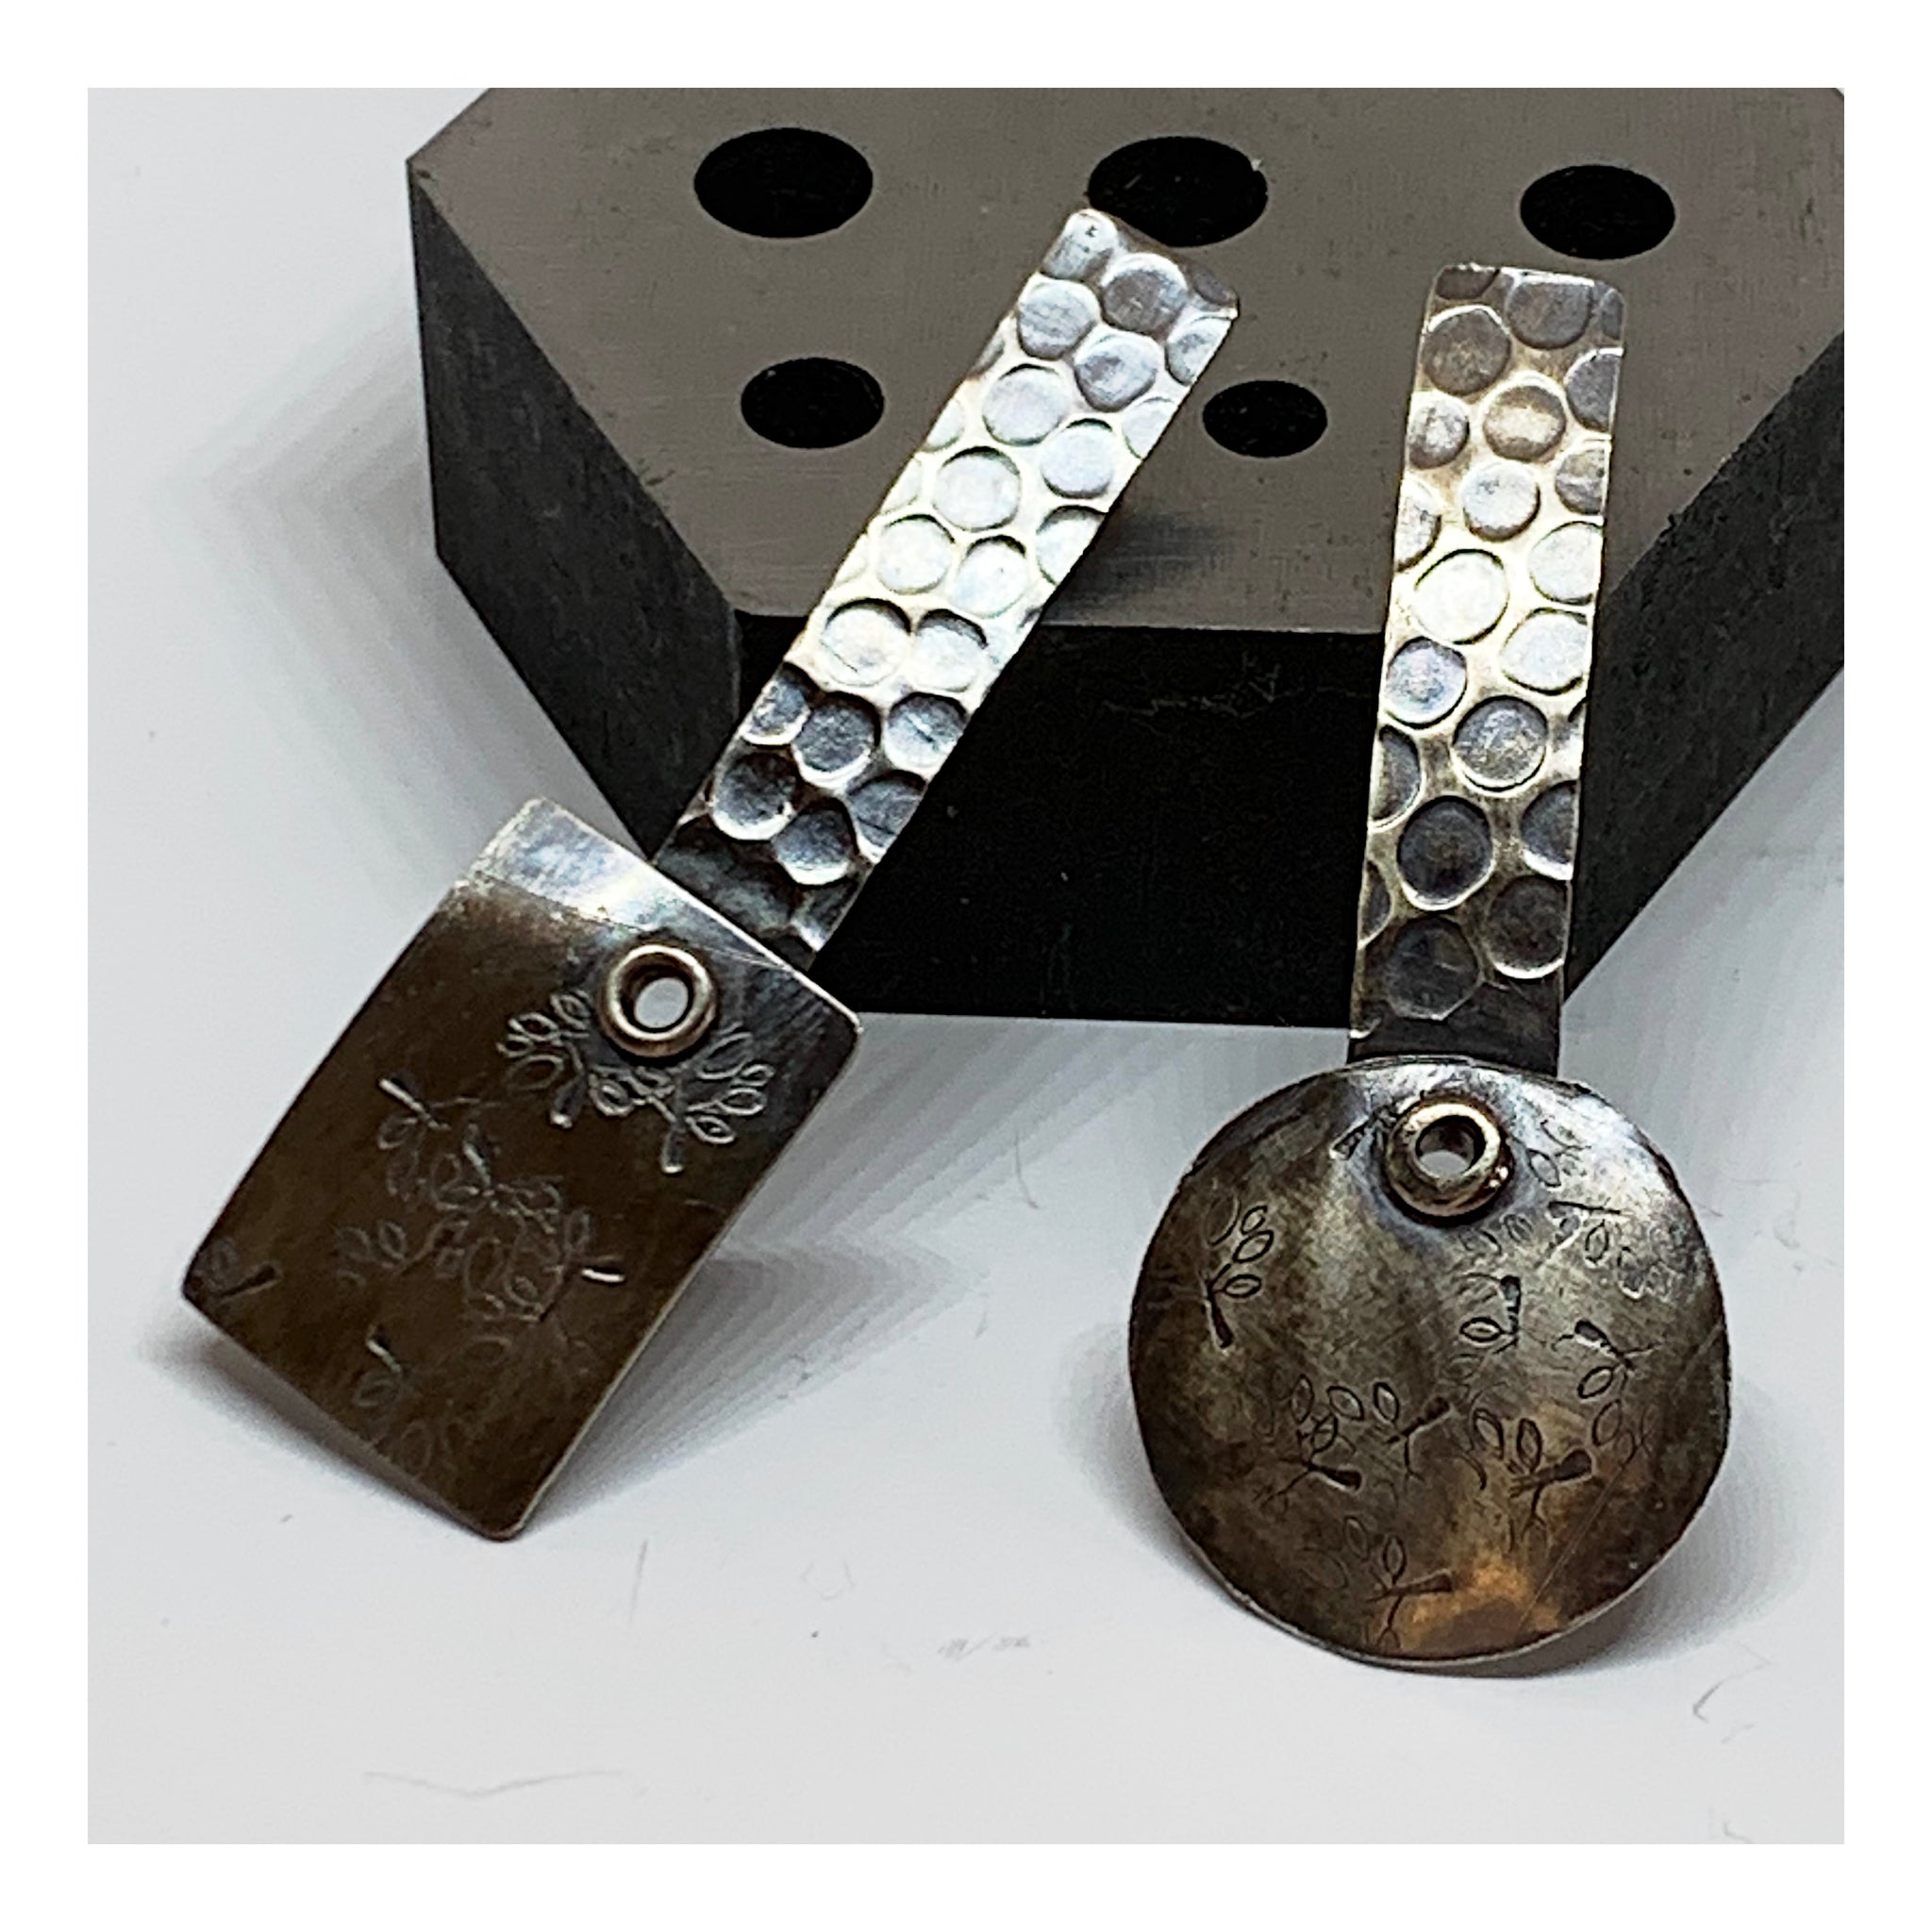 Industrial Urban Chic Earrings - Sterling Silver Earrings - Unique OOAK Earrings